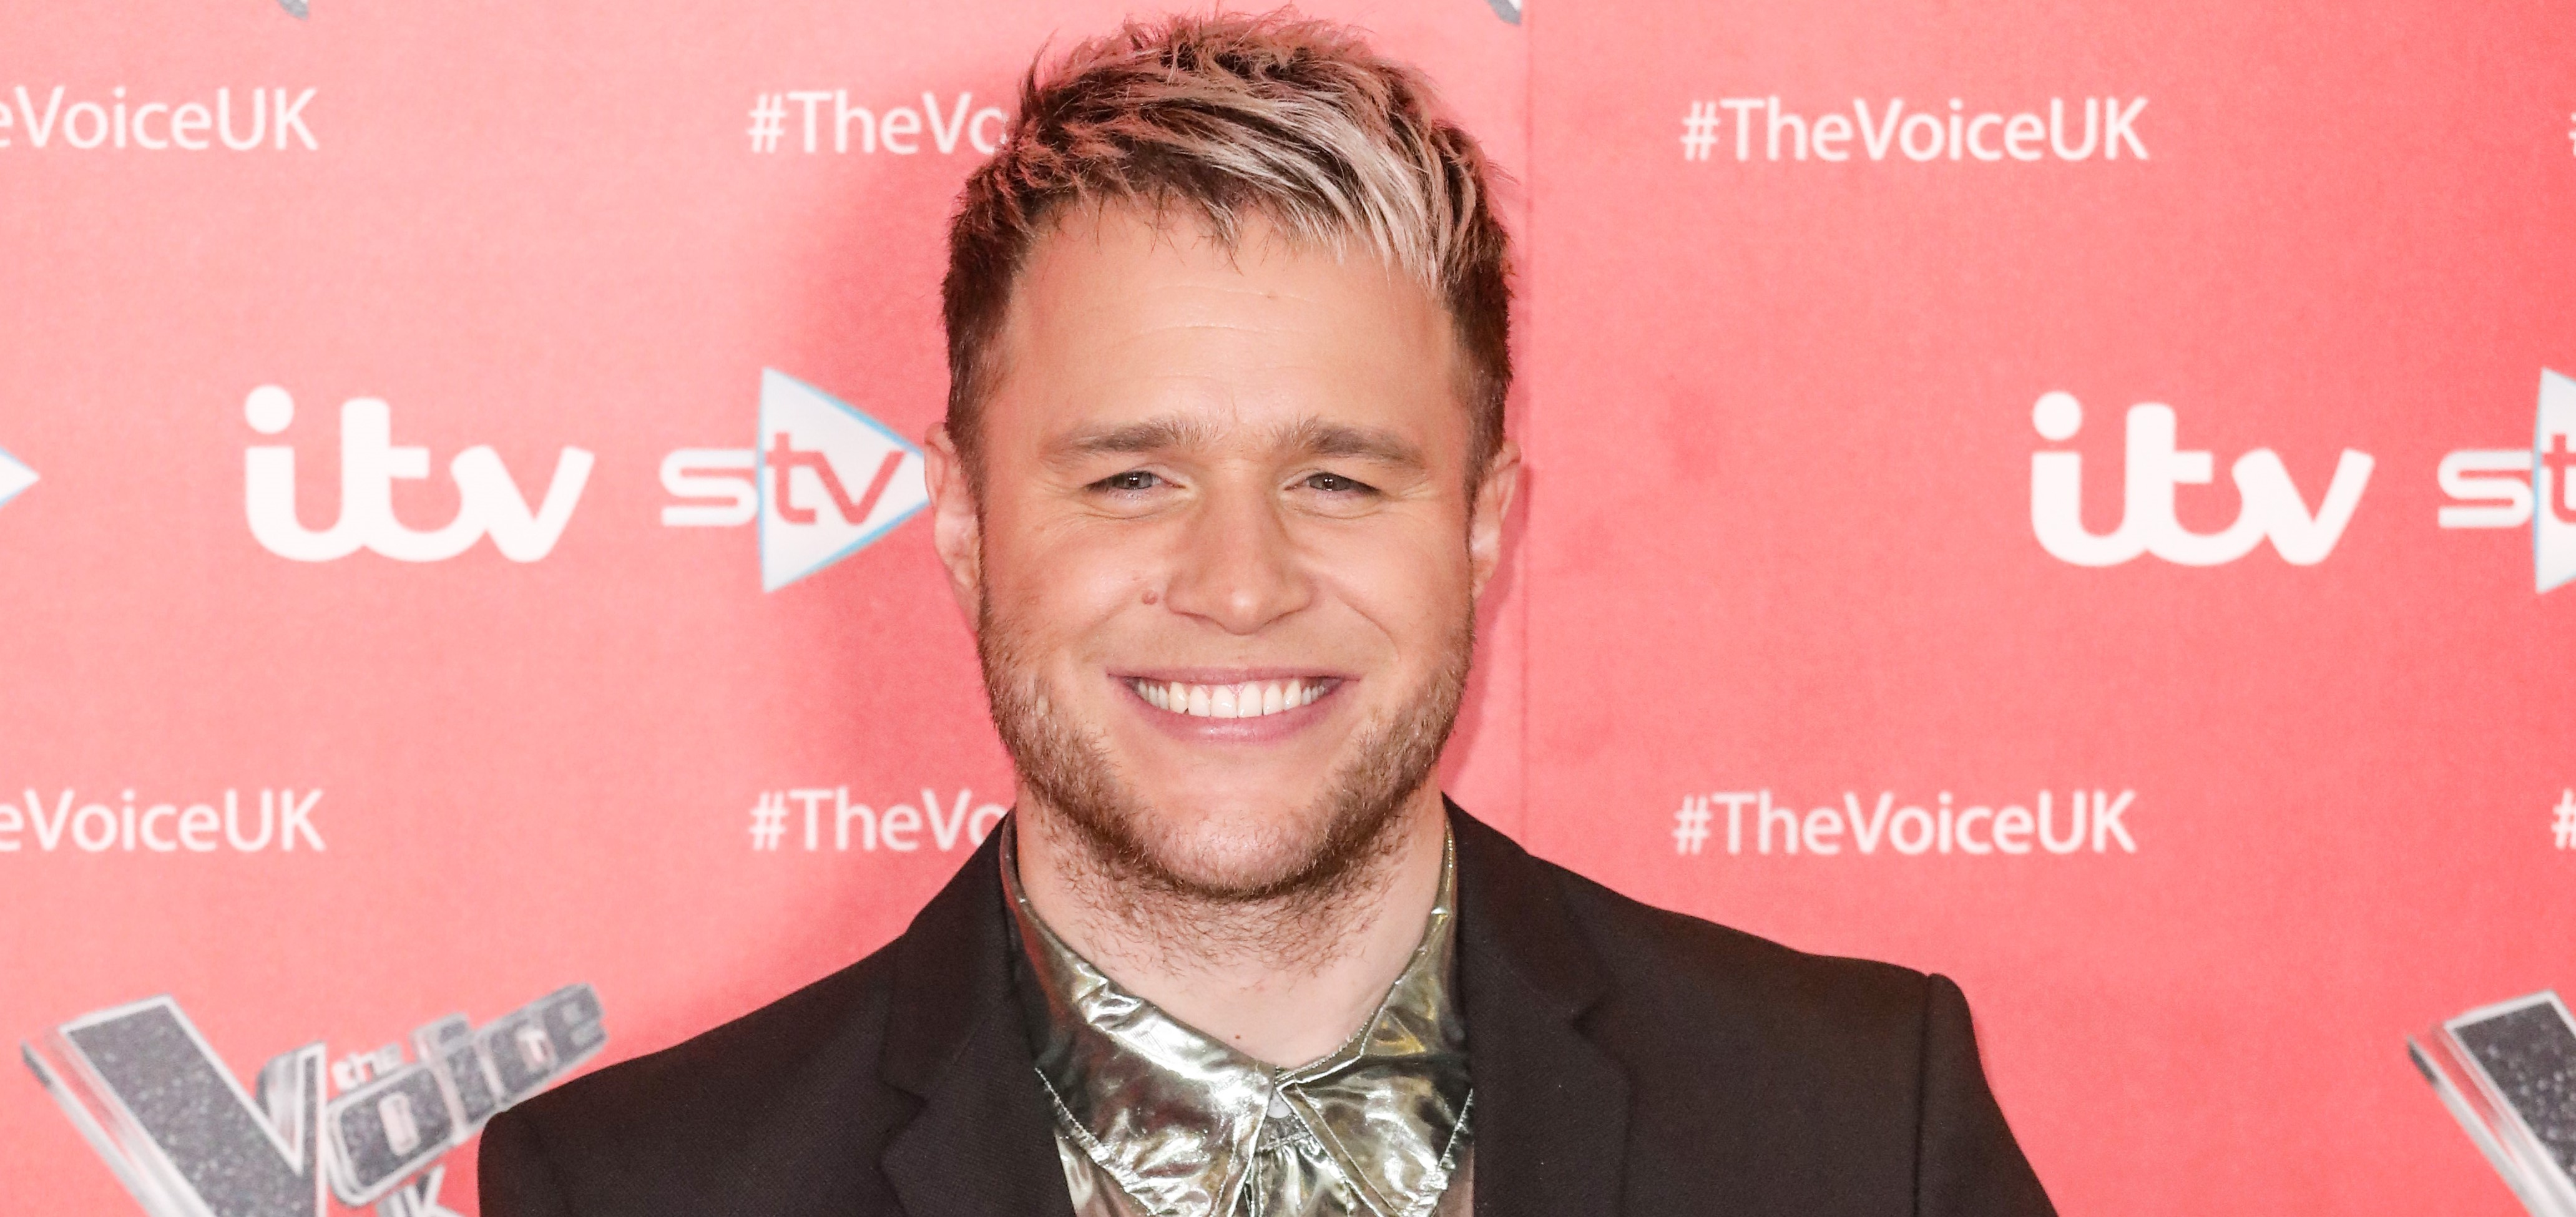 Olly Murs says X Factor should take a break for a 'couple of years'